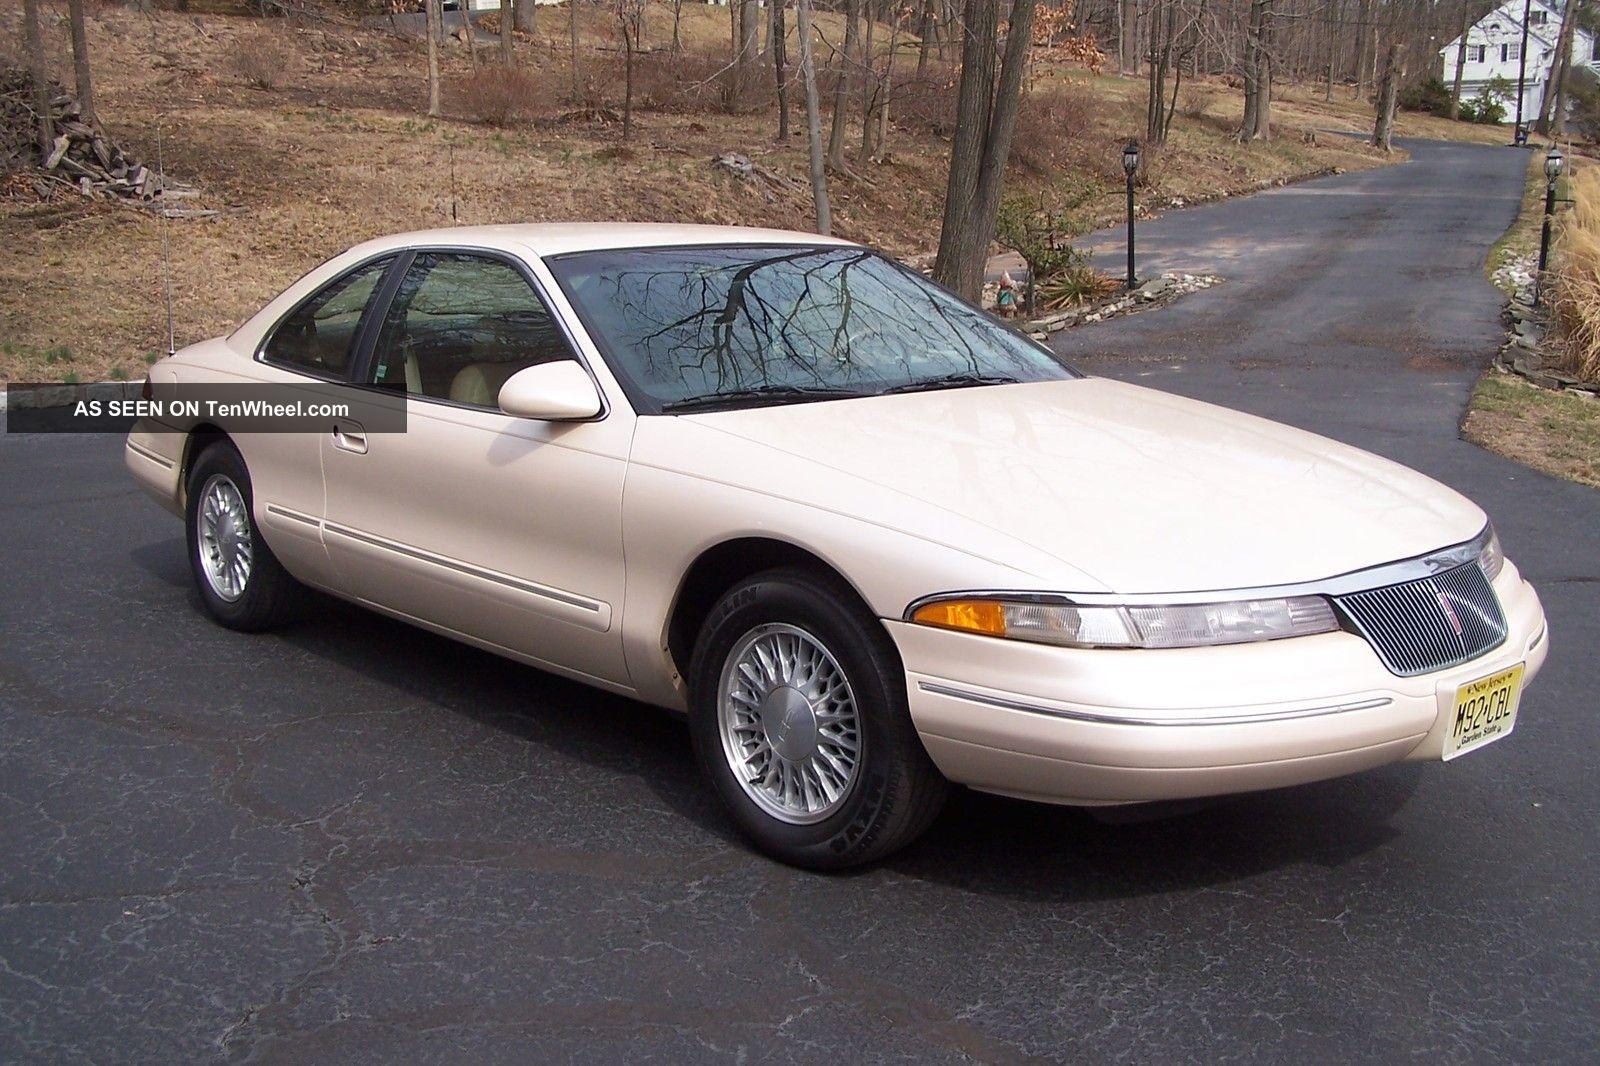 1995 Lincoln Mark Viii Information And Photos Zombiedrive 97 Fuse Box 1 800 1024 1280 1600 Origin